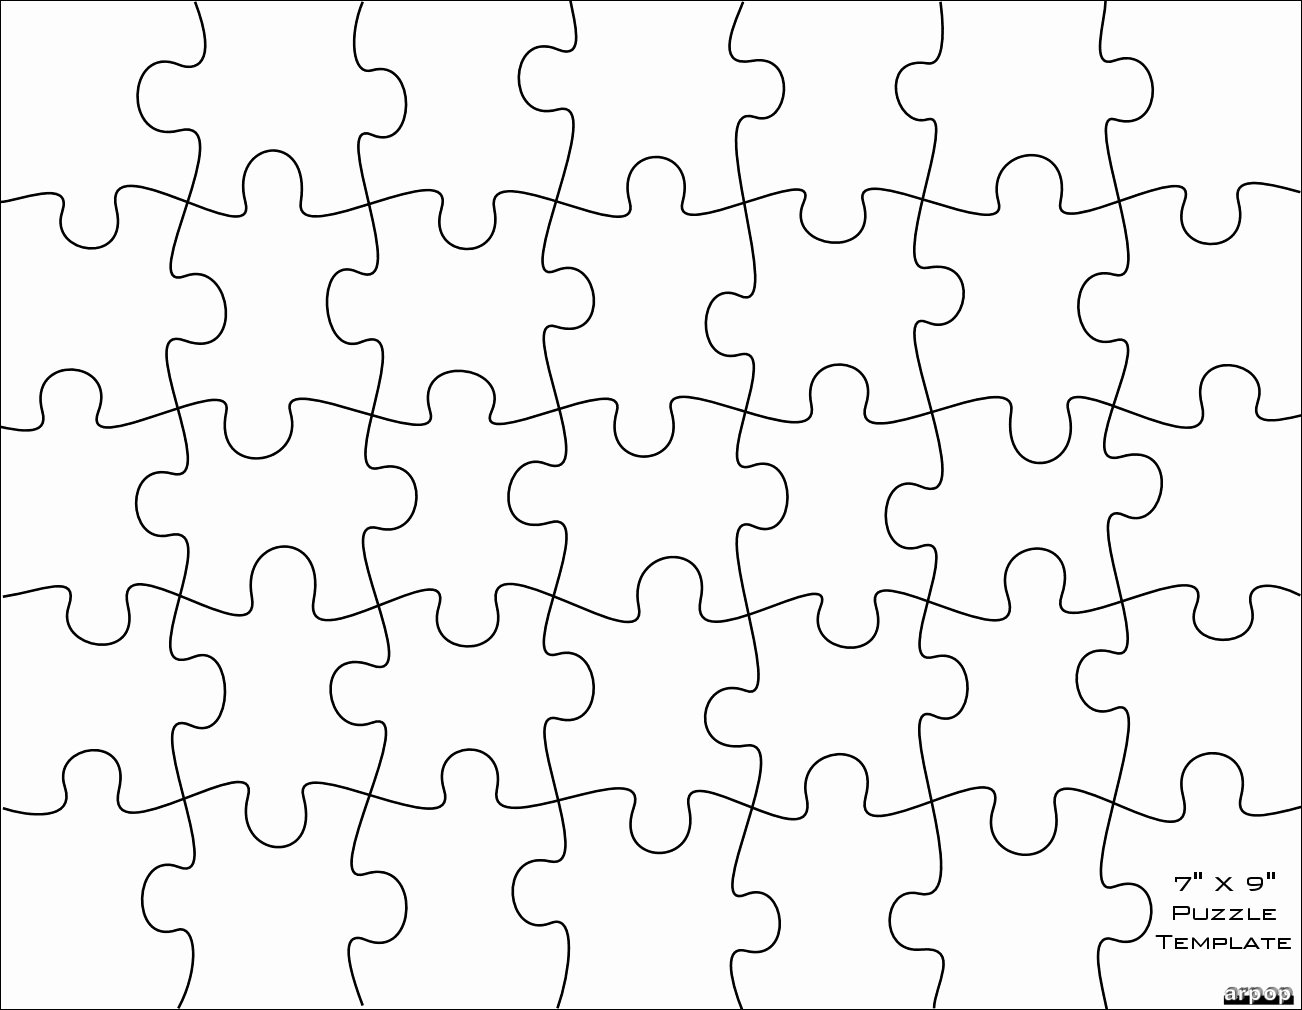 9 Piece Puzzle Template Luxury Question Plaster Puzzle Pieces [answered ]